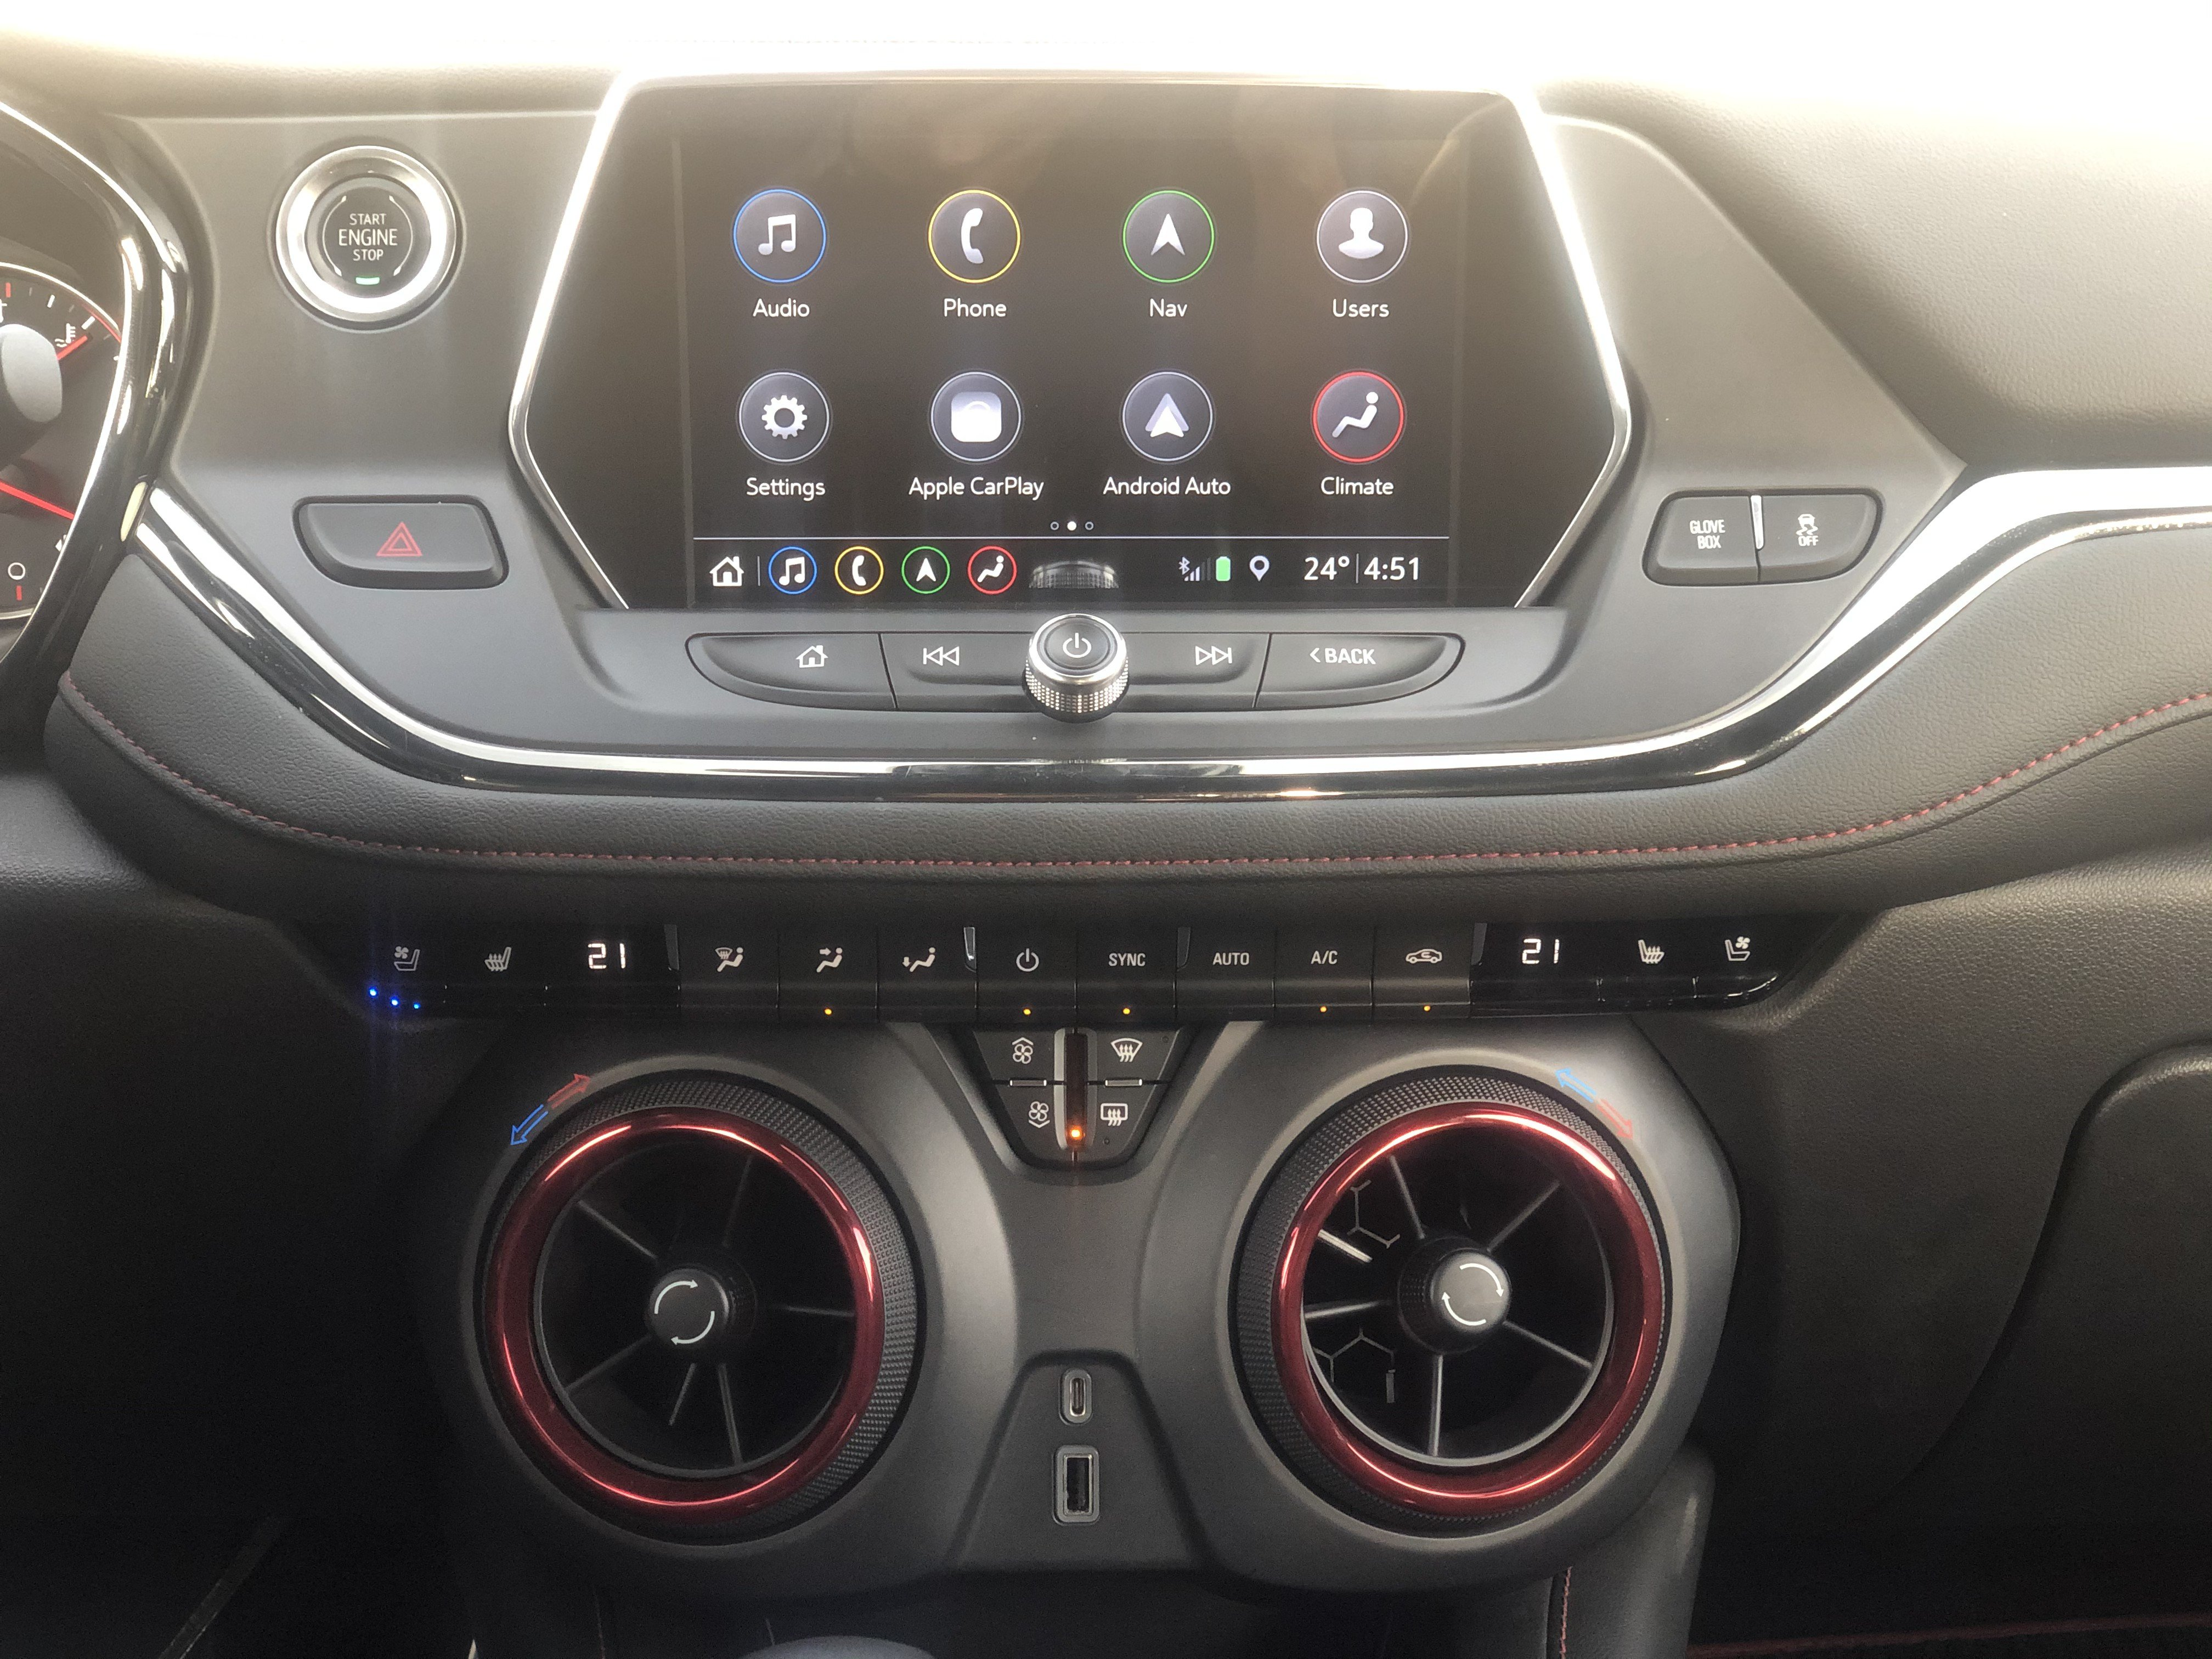 Chevrolet Blazer 2019 eight-inch color touch screen, called Infotainment 3, is filled with connectivity features. The five-inch circular air conditioning ventilation mounted on the center console